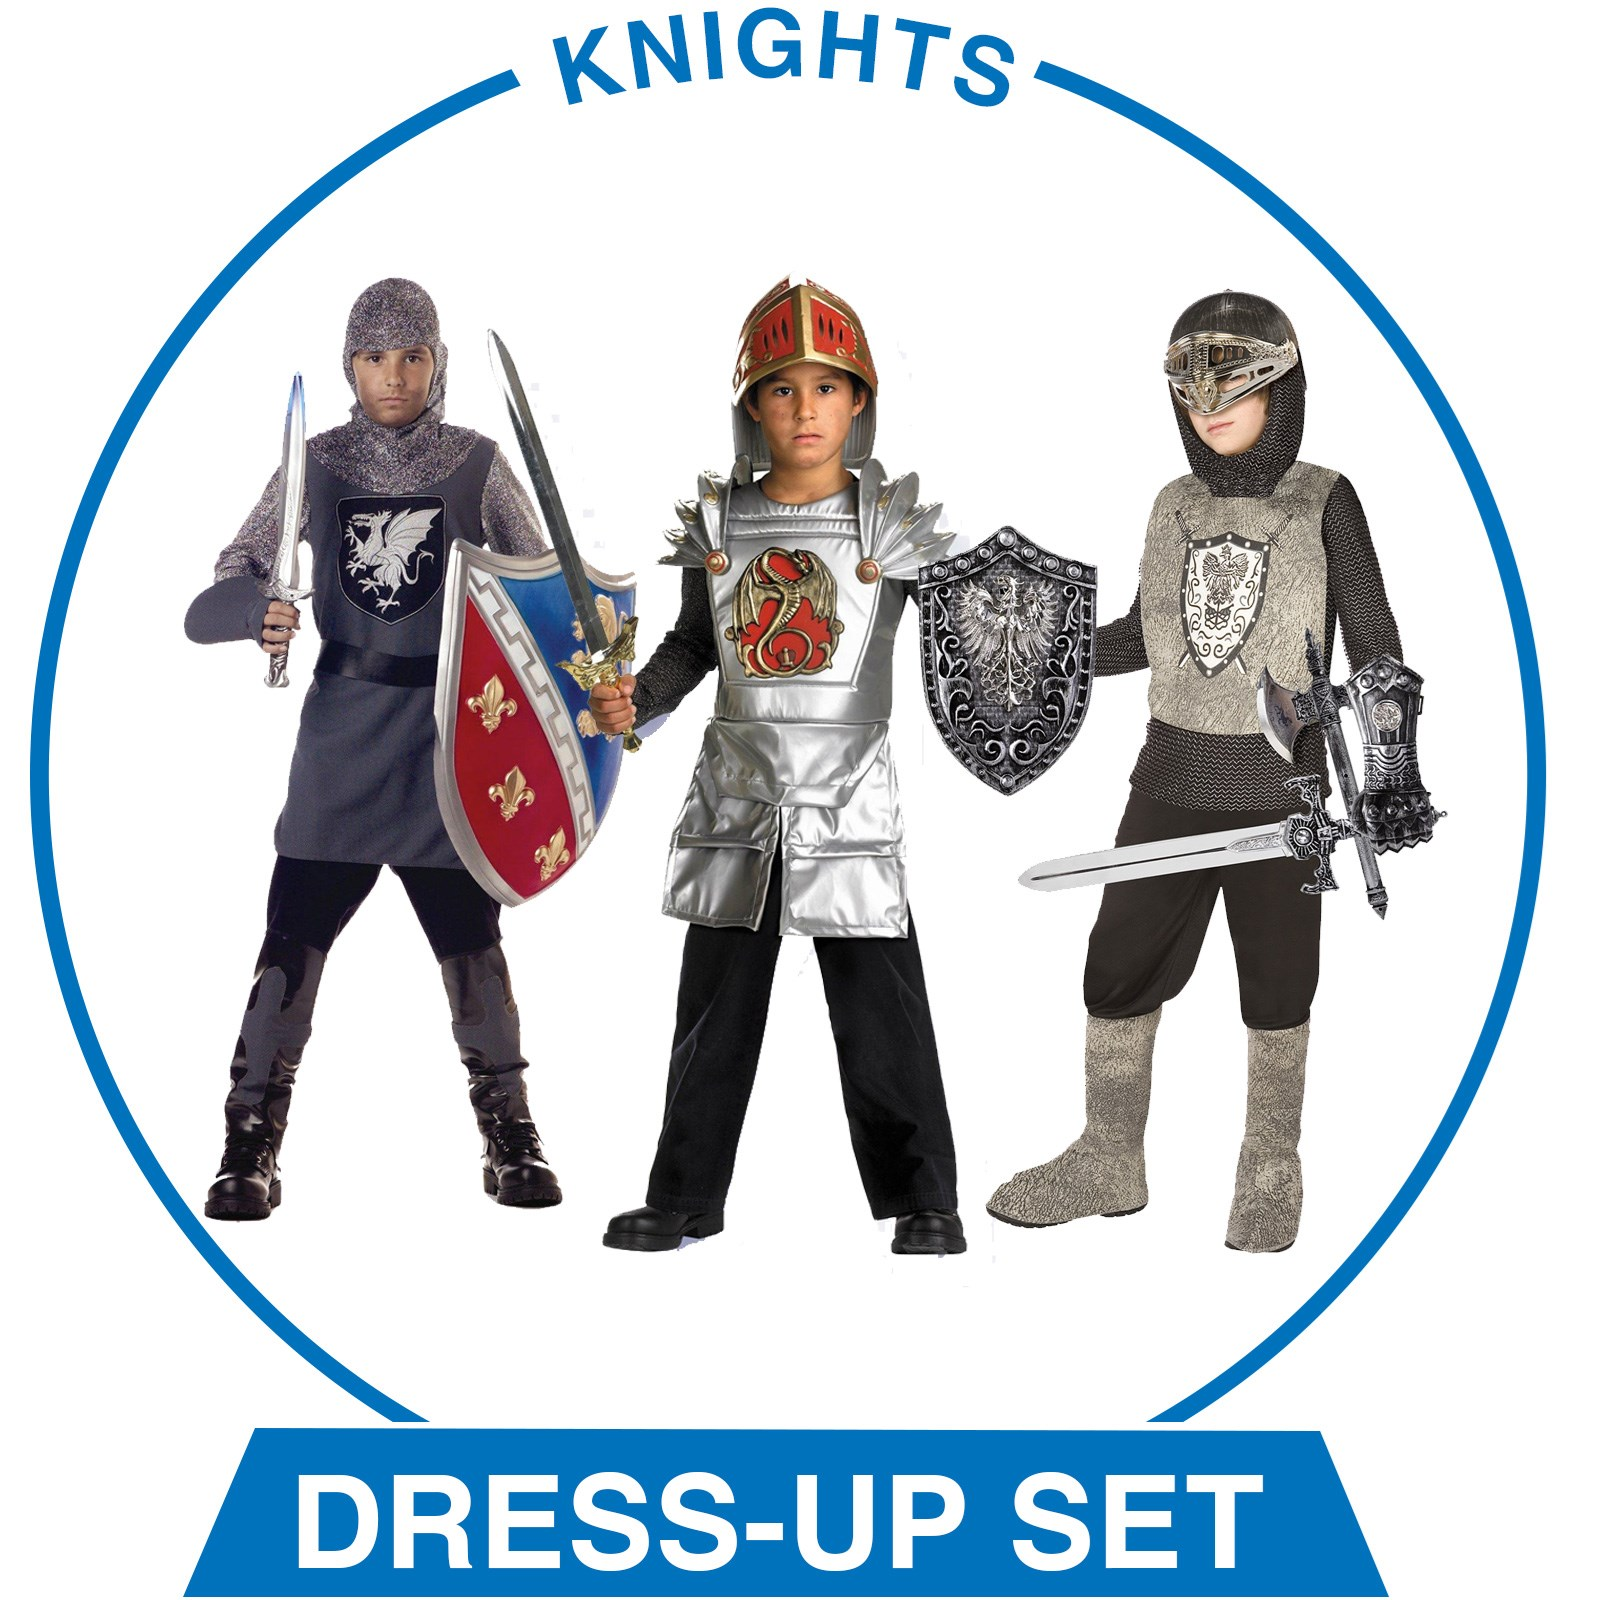 Boys Knights Dress-up Set